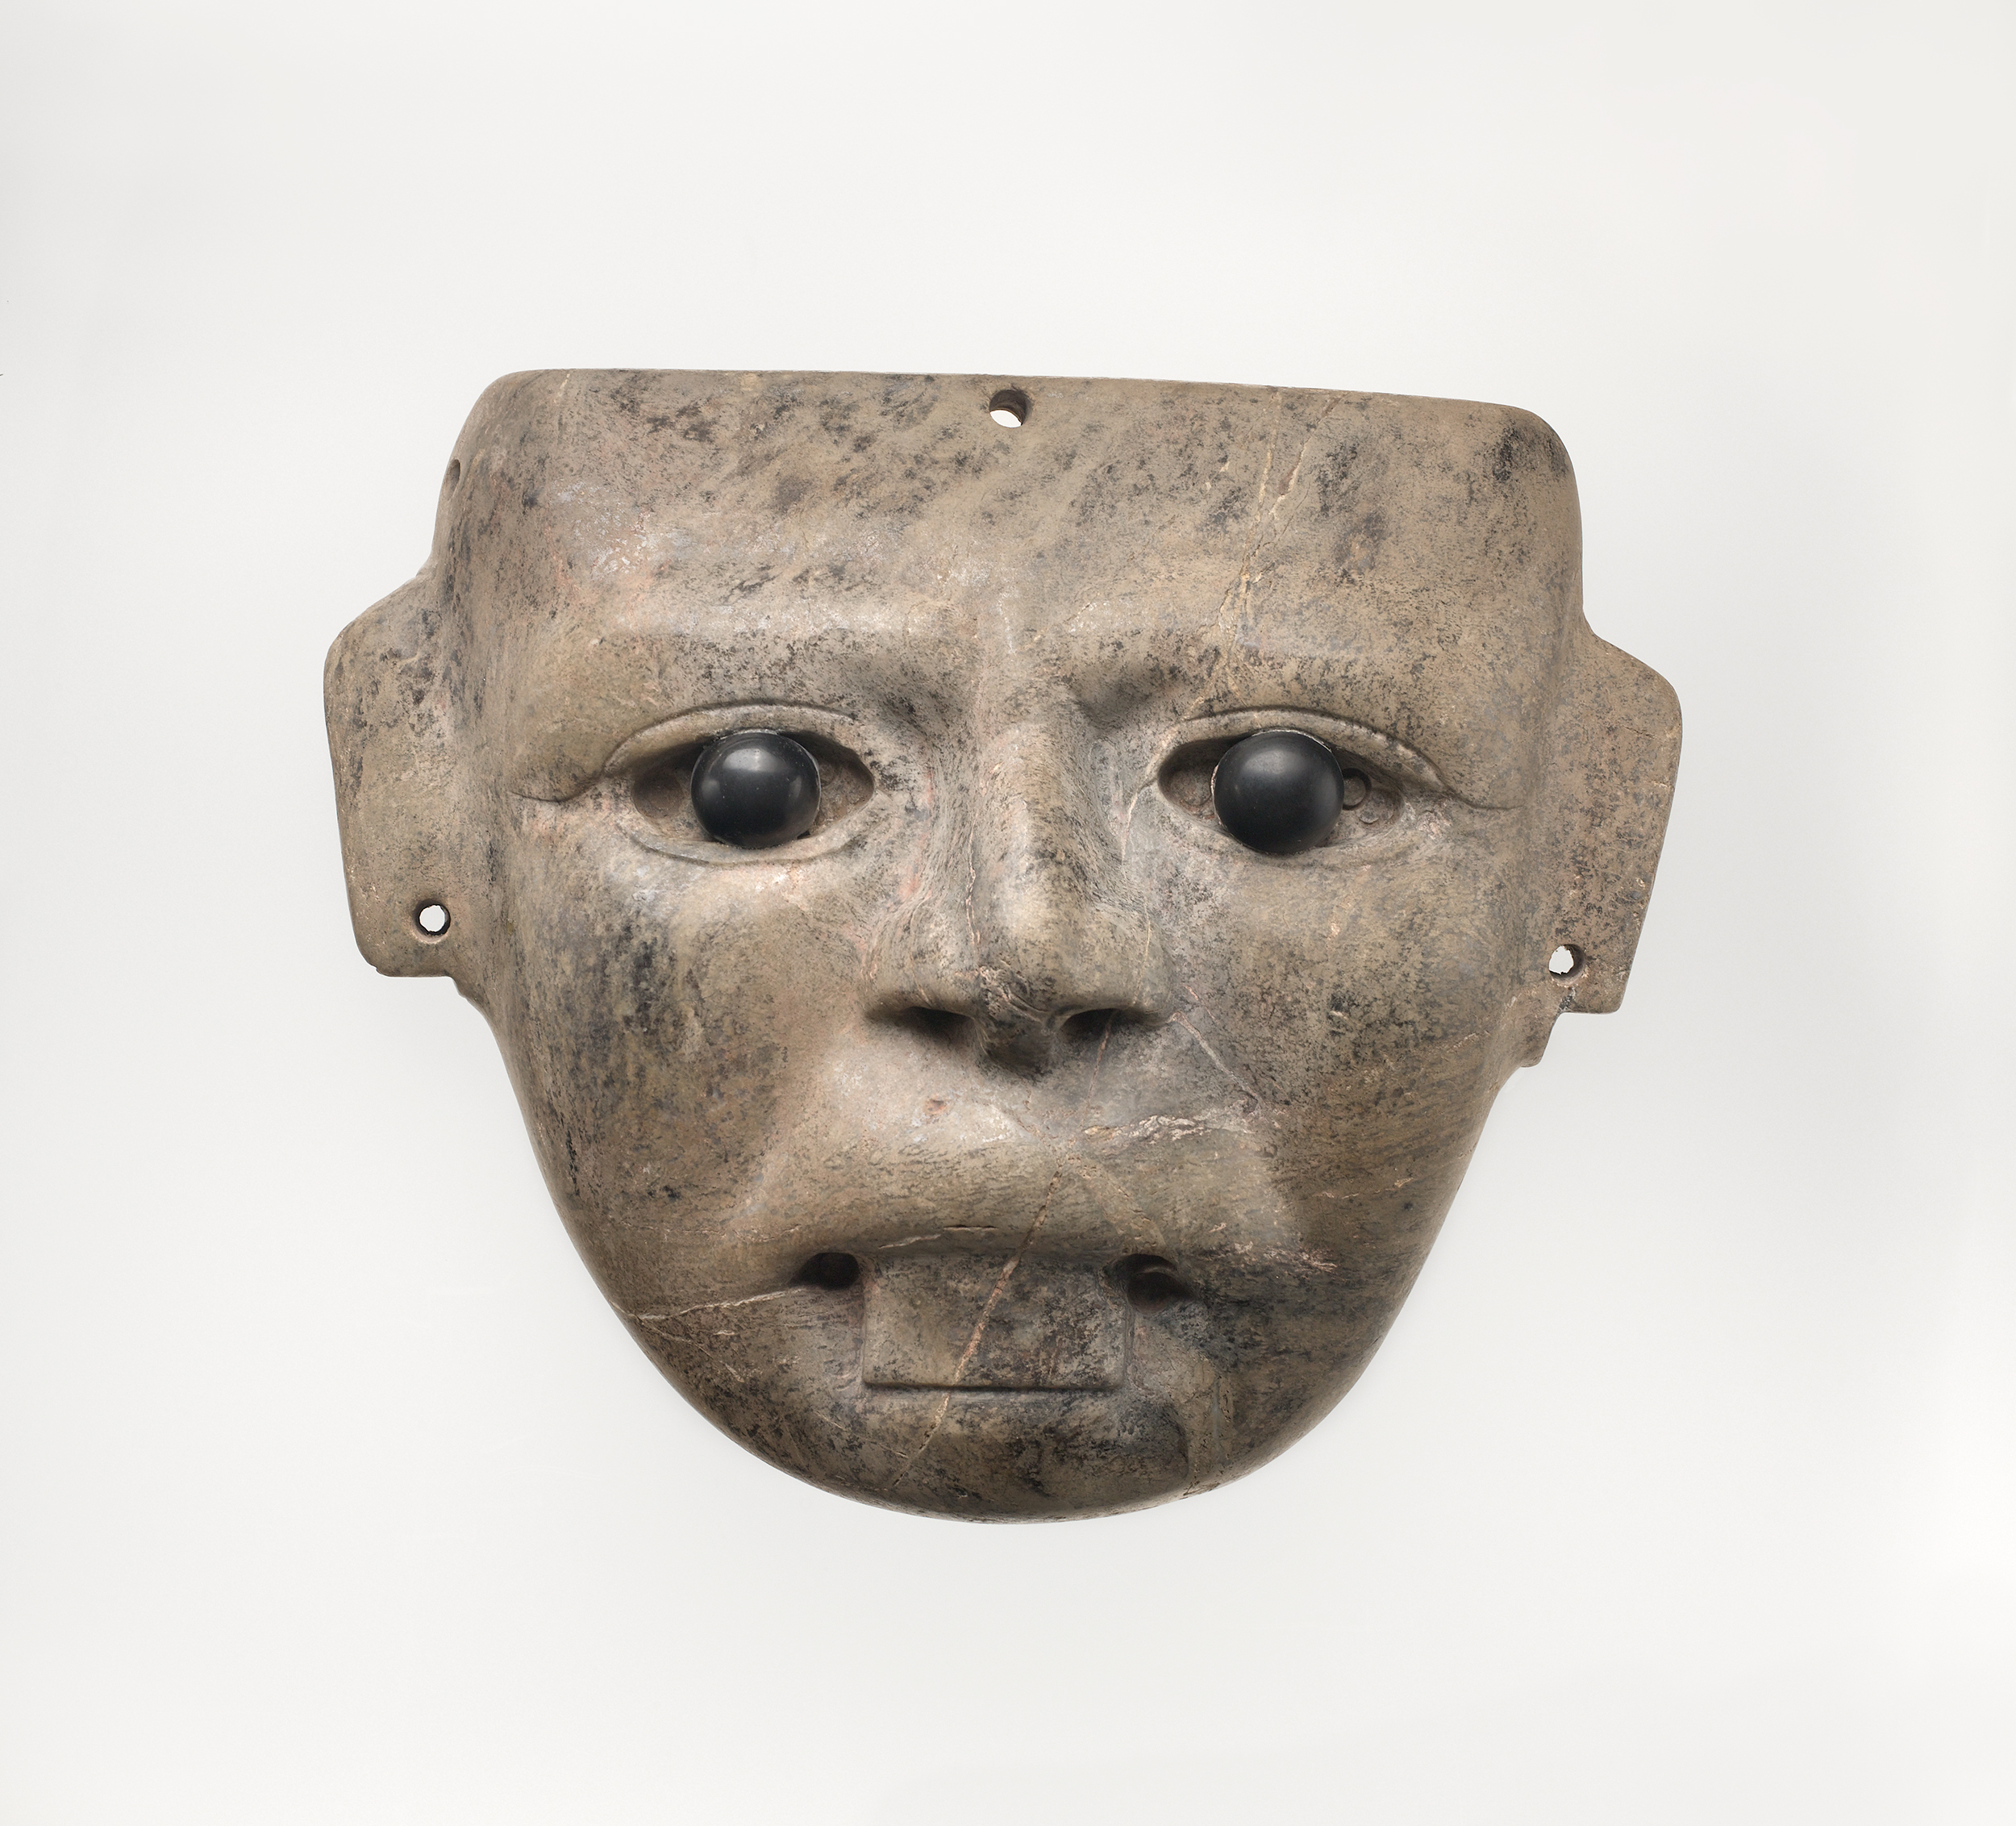 Stylistic stone mask with inlaid black eyes and stuck out tongue.